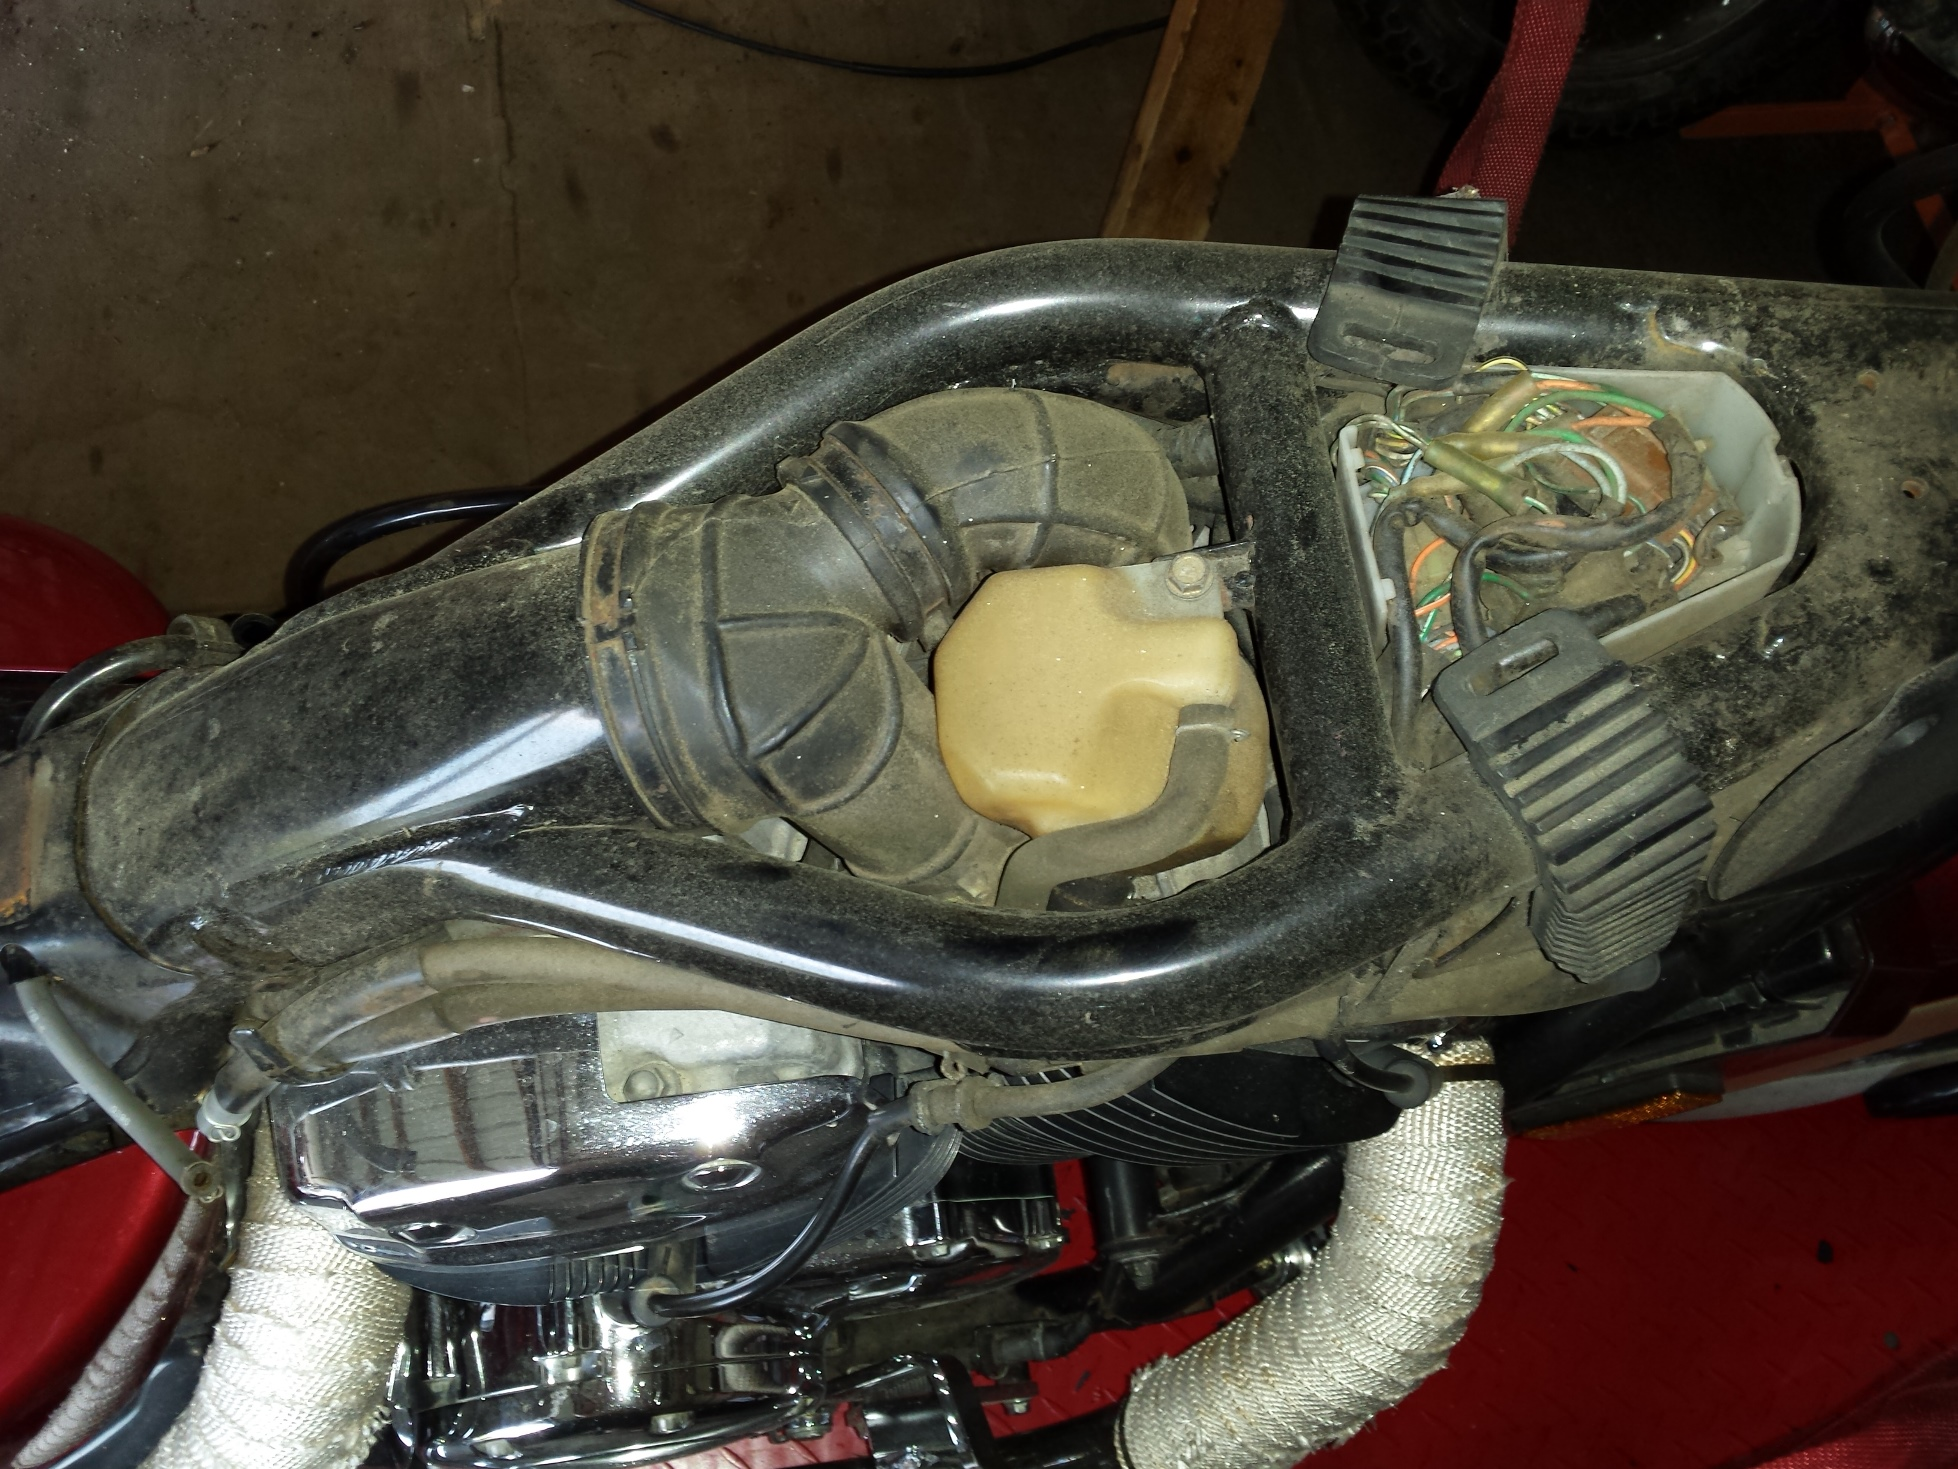 1996 Honda Shadow 1100 Wiring System Diagram Trusted Diagrams 97 Carb Cleaning Jetting Part 1 1998 Goldwing